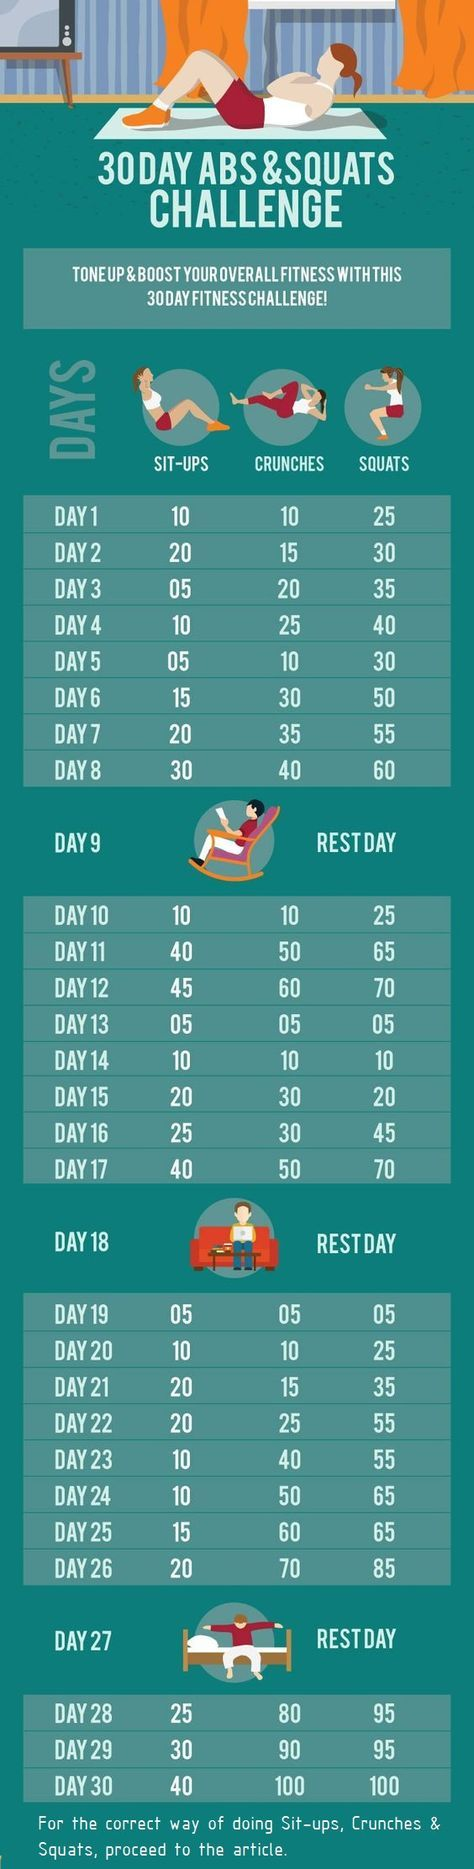 Follow this 30 day abs & squat challenge to achieve INCREDIBLE results! For more information visit: http://www.liveinfinitely.com/